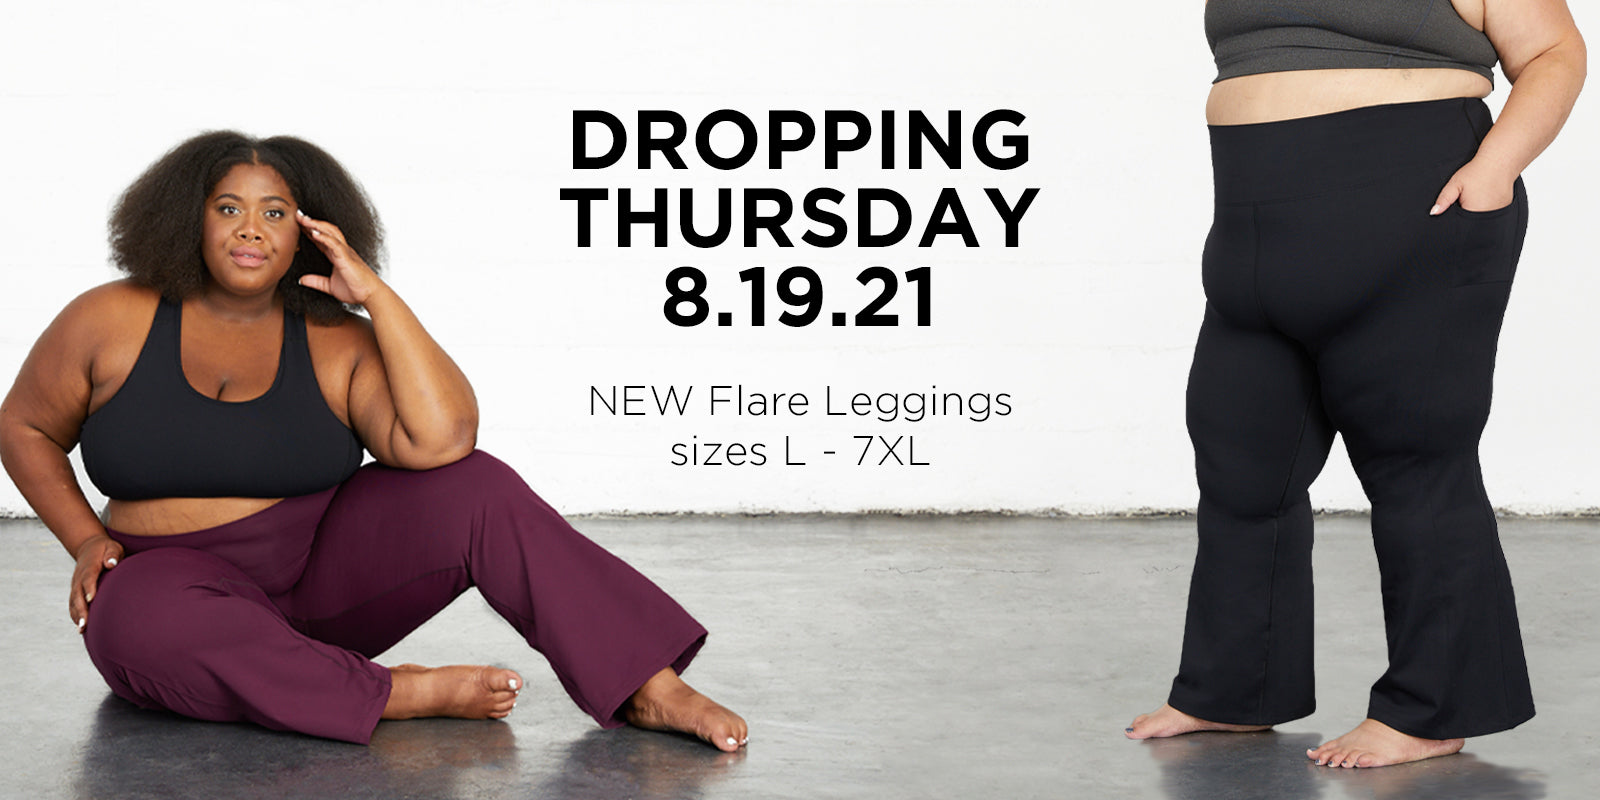 DROPPING THURSDAY - Superfit Hero Plus Size Flare Yoga Legging with Pockets